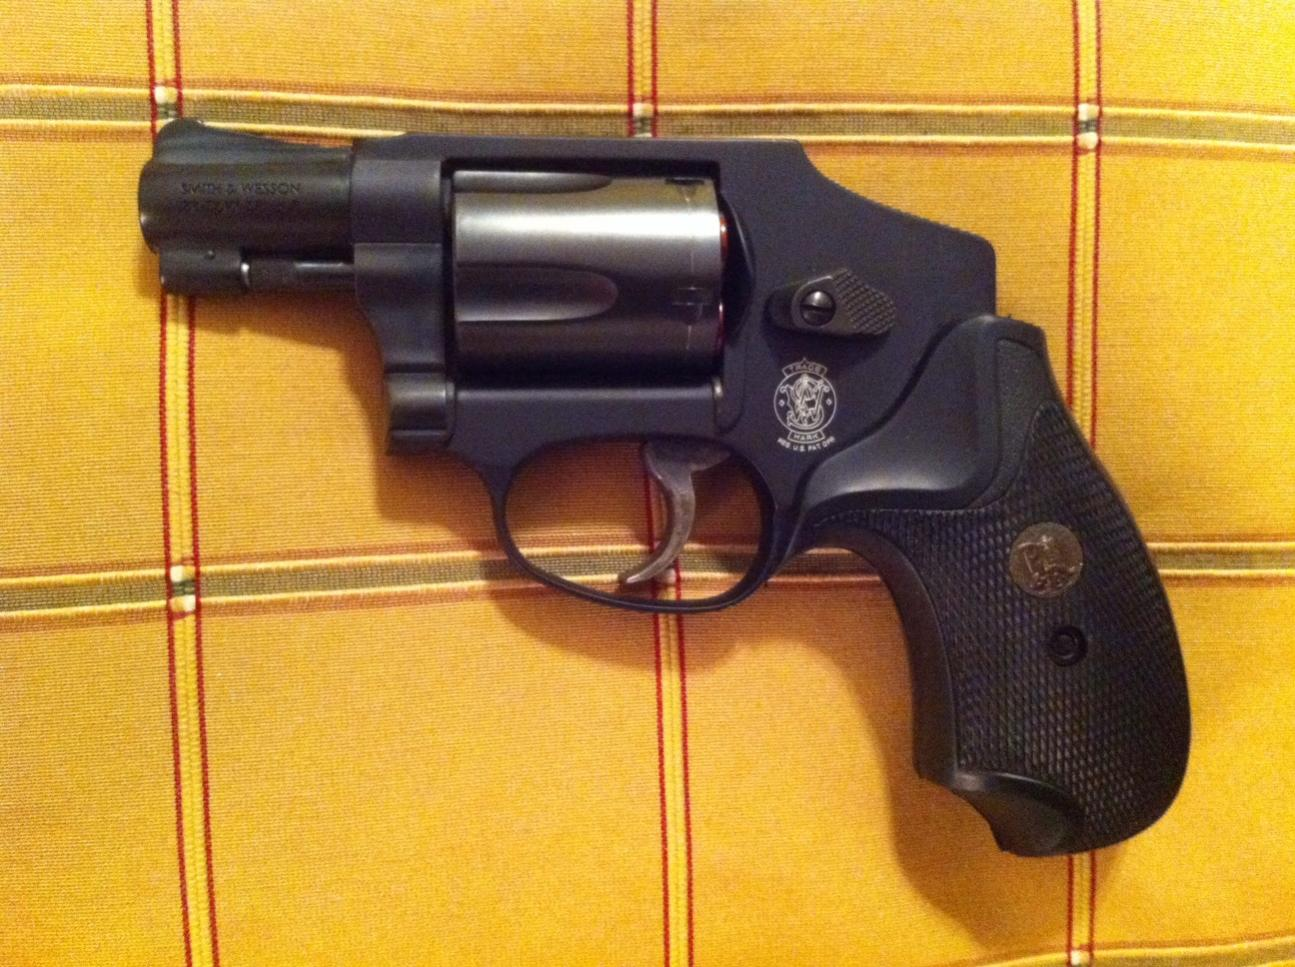 New Pachmayr Compac grips for 442-image.jpg